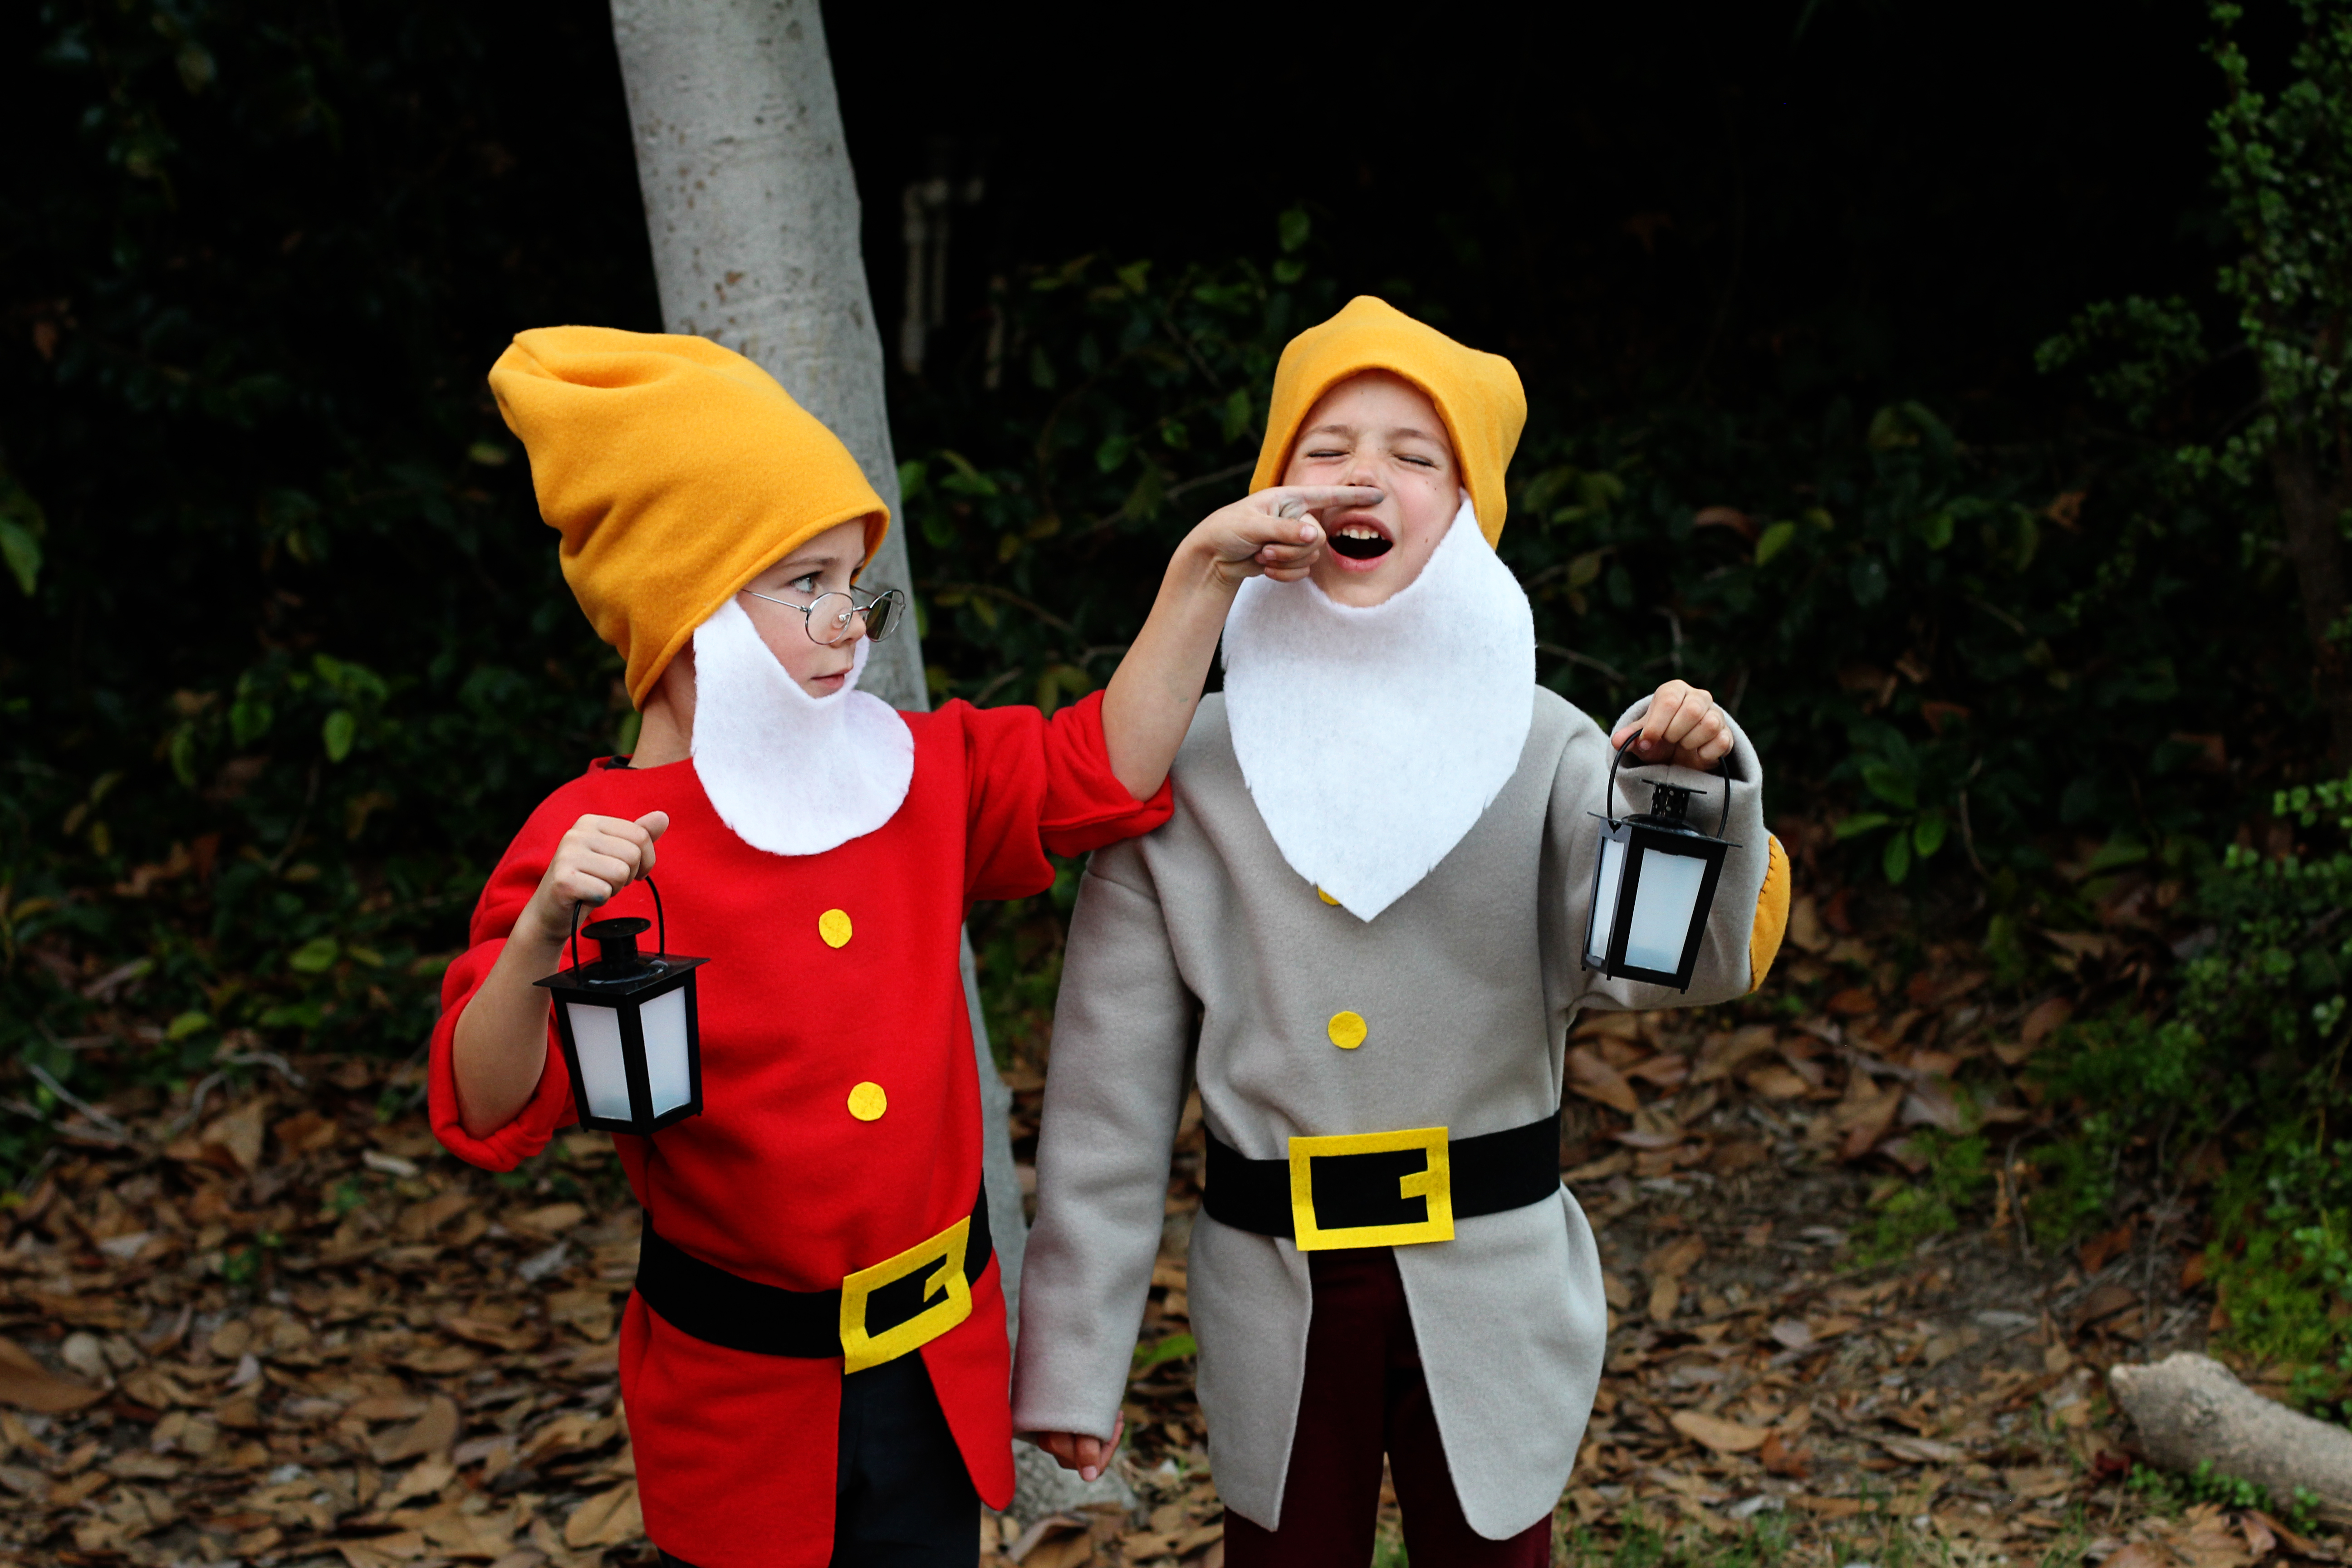 Diy snow white and seven dwarfs costumes tutorials i hope you have fun with your snow white costumes post pics solutioingenieria Image collections